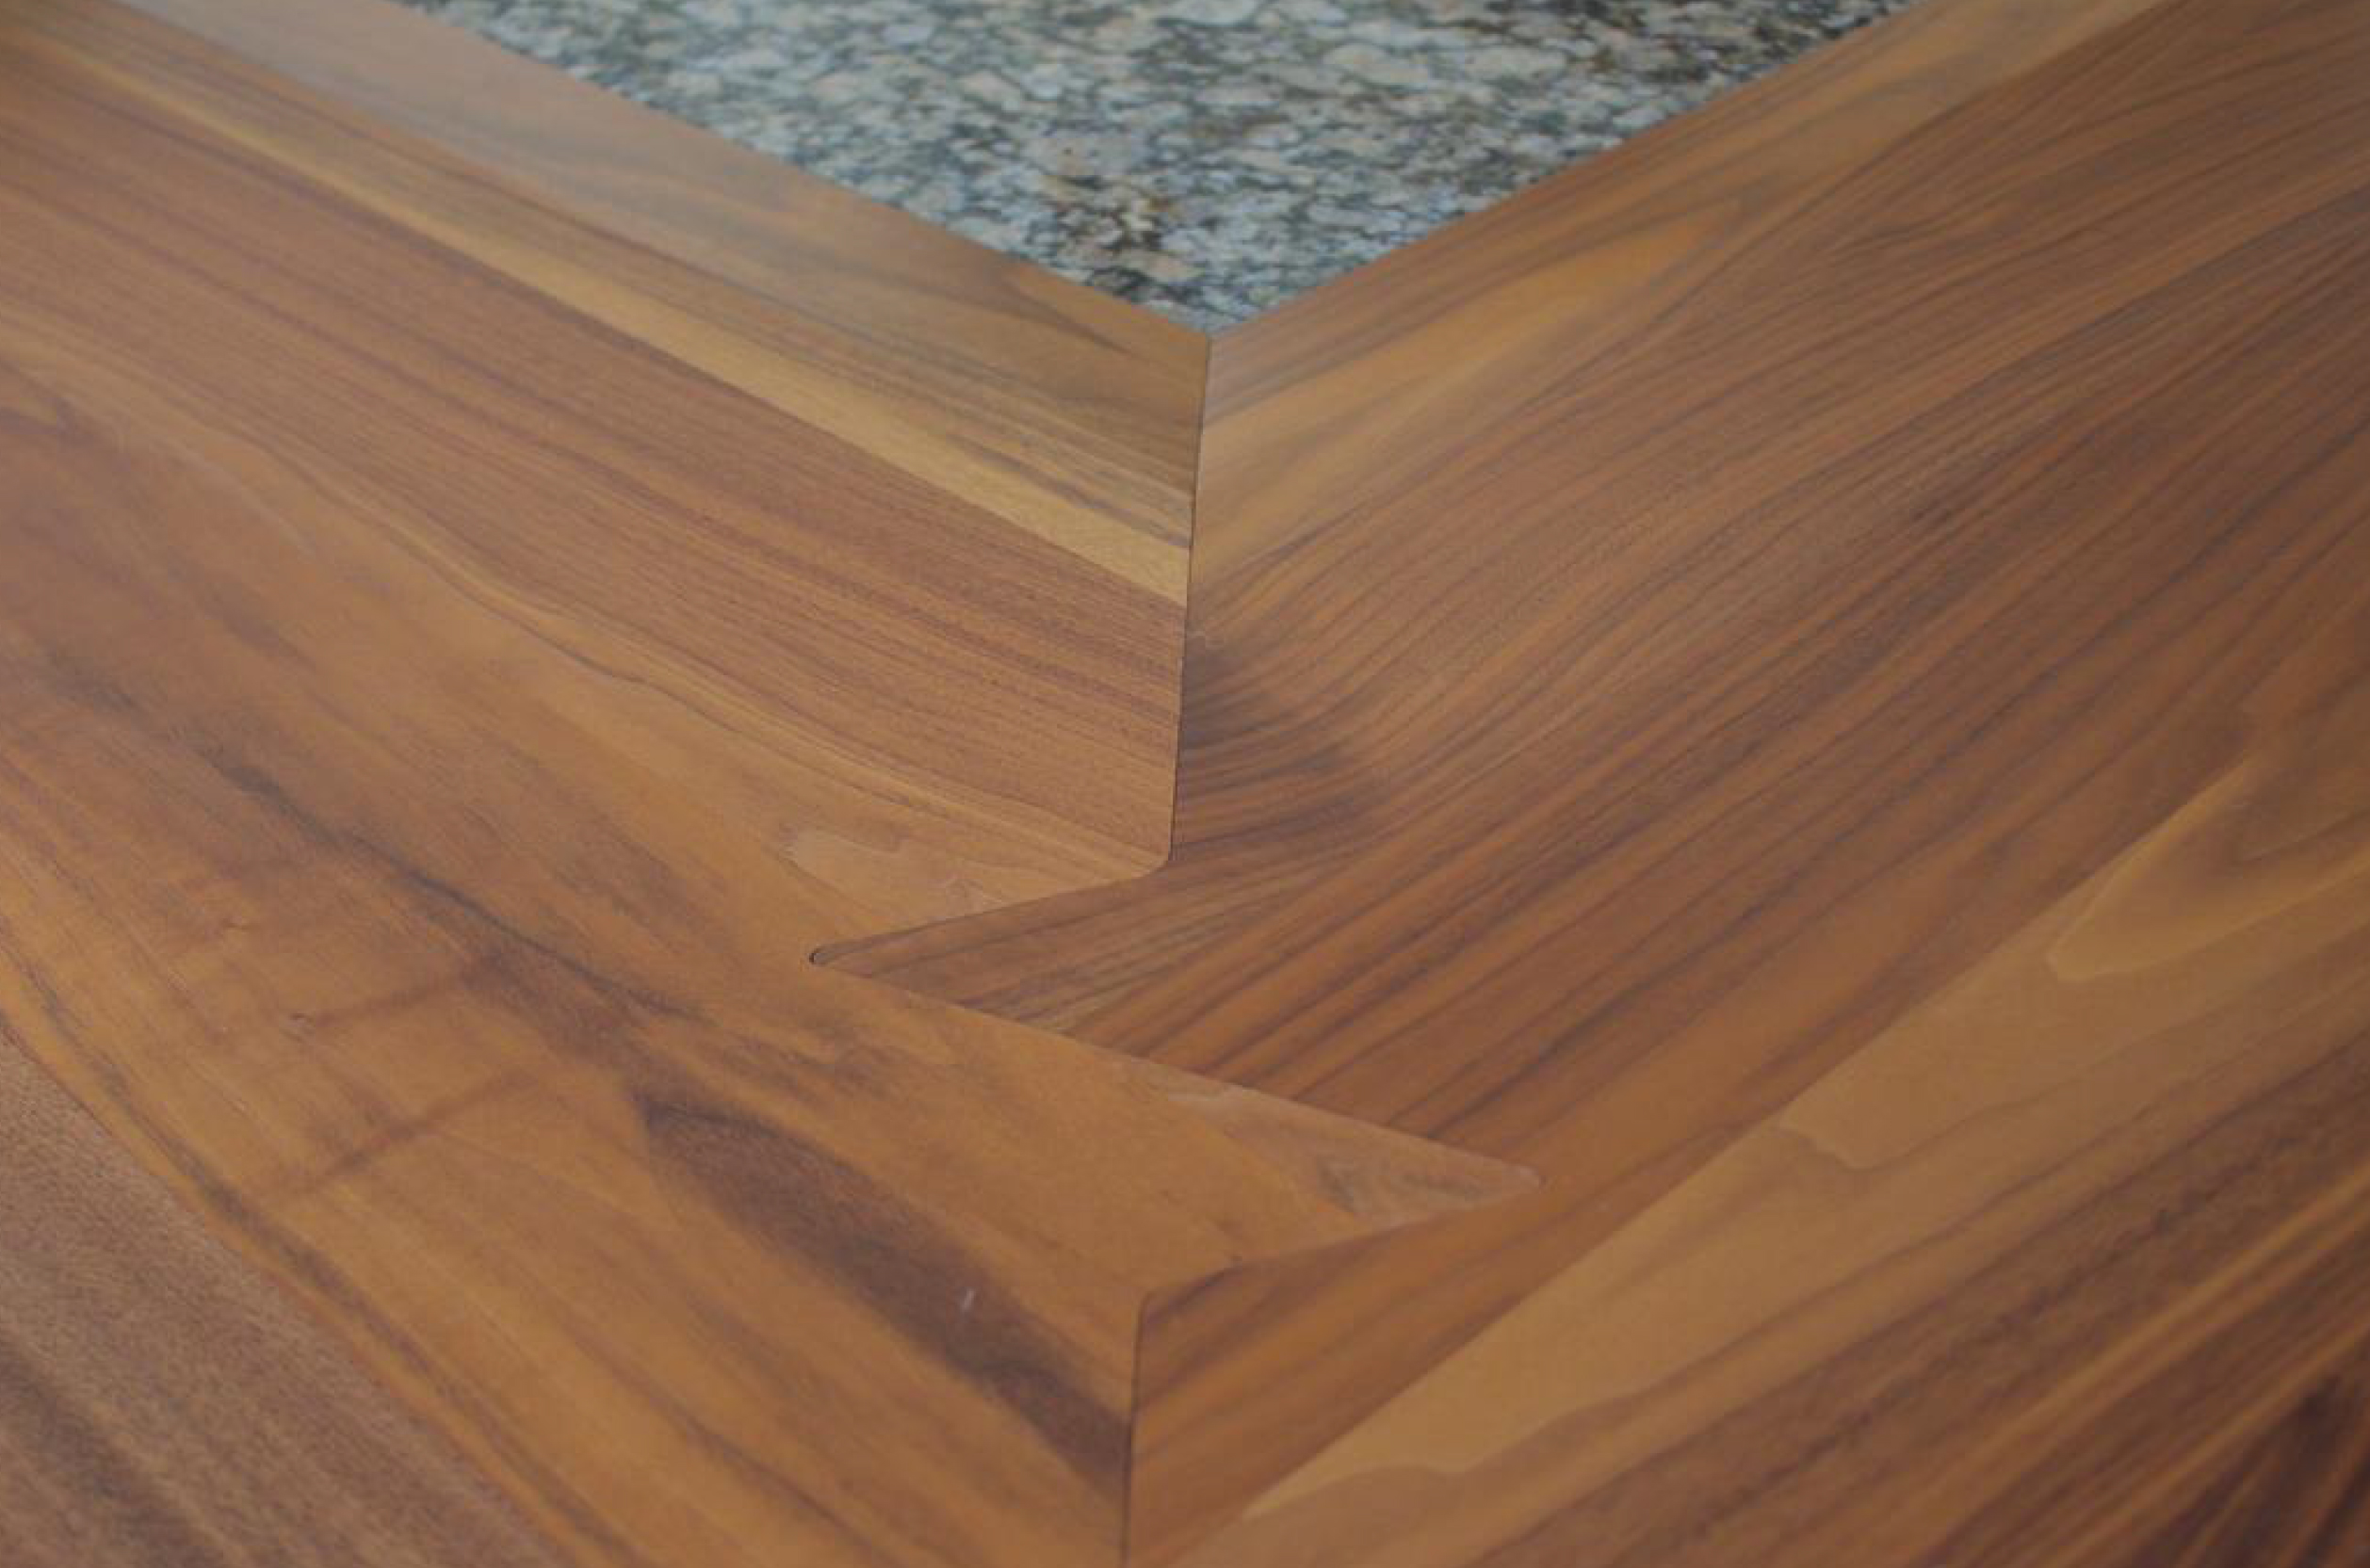 Walnut Wood Countertop with Shark Tooth Miter Joint